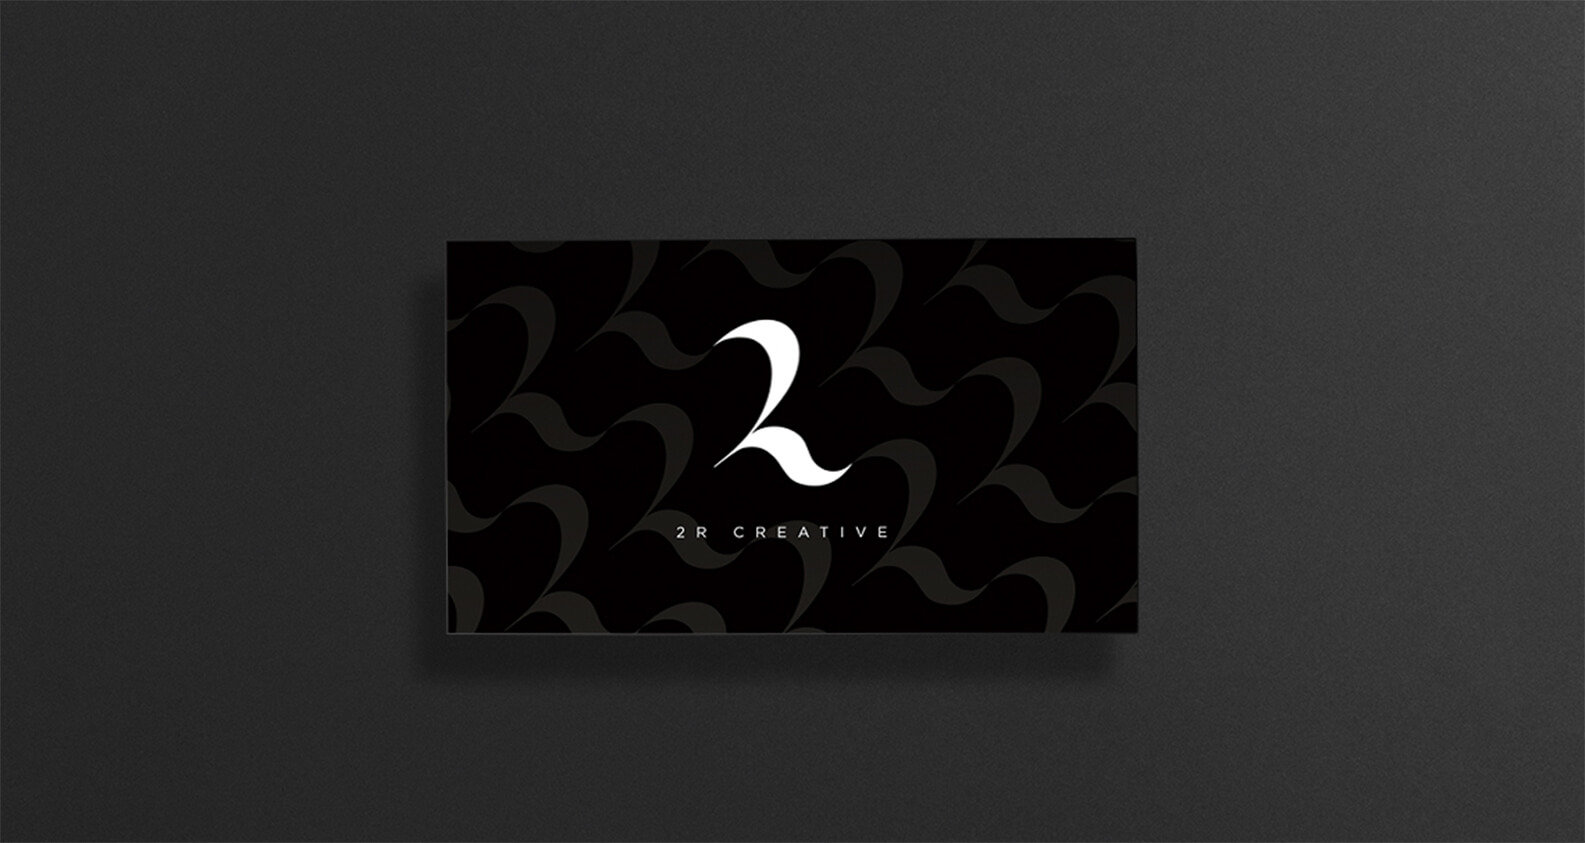 2R Creative business card design by Jacober Creative